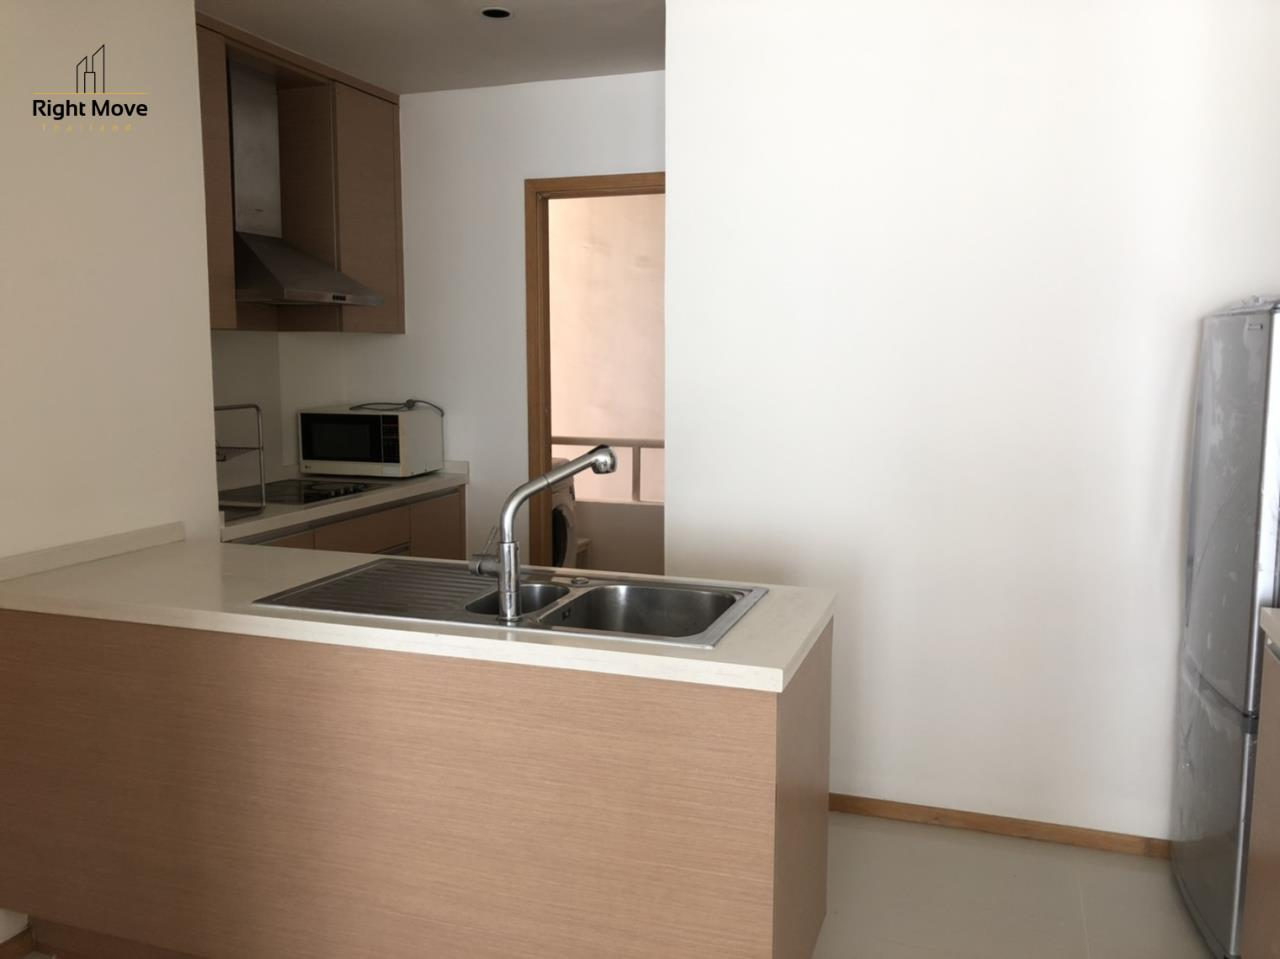 Right Move Thailand Agency's CA6617 Emprice Place For Rent 55,000 THB 2 Bedrooms 100 Sqm  8